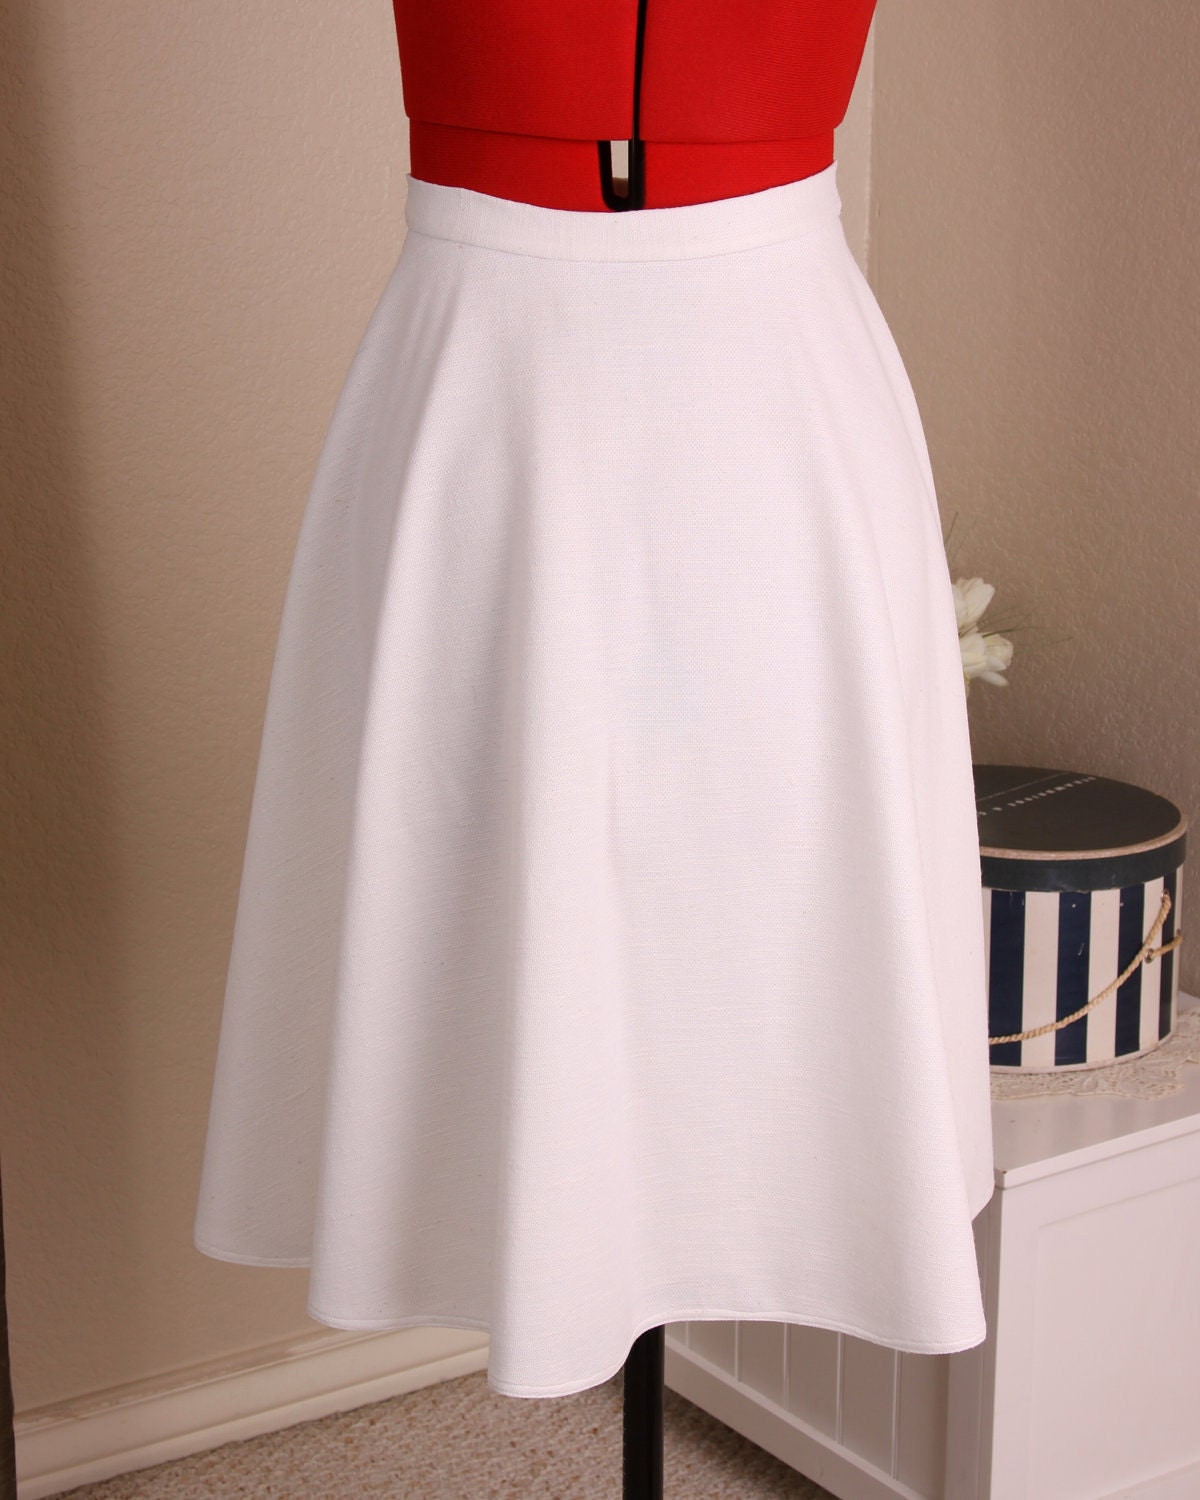 White A-Line Skirt Vintage 70's High Waisted Circle